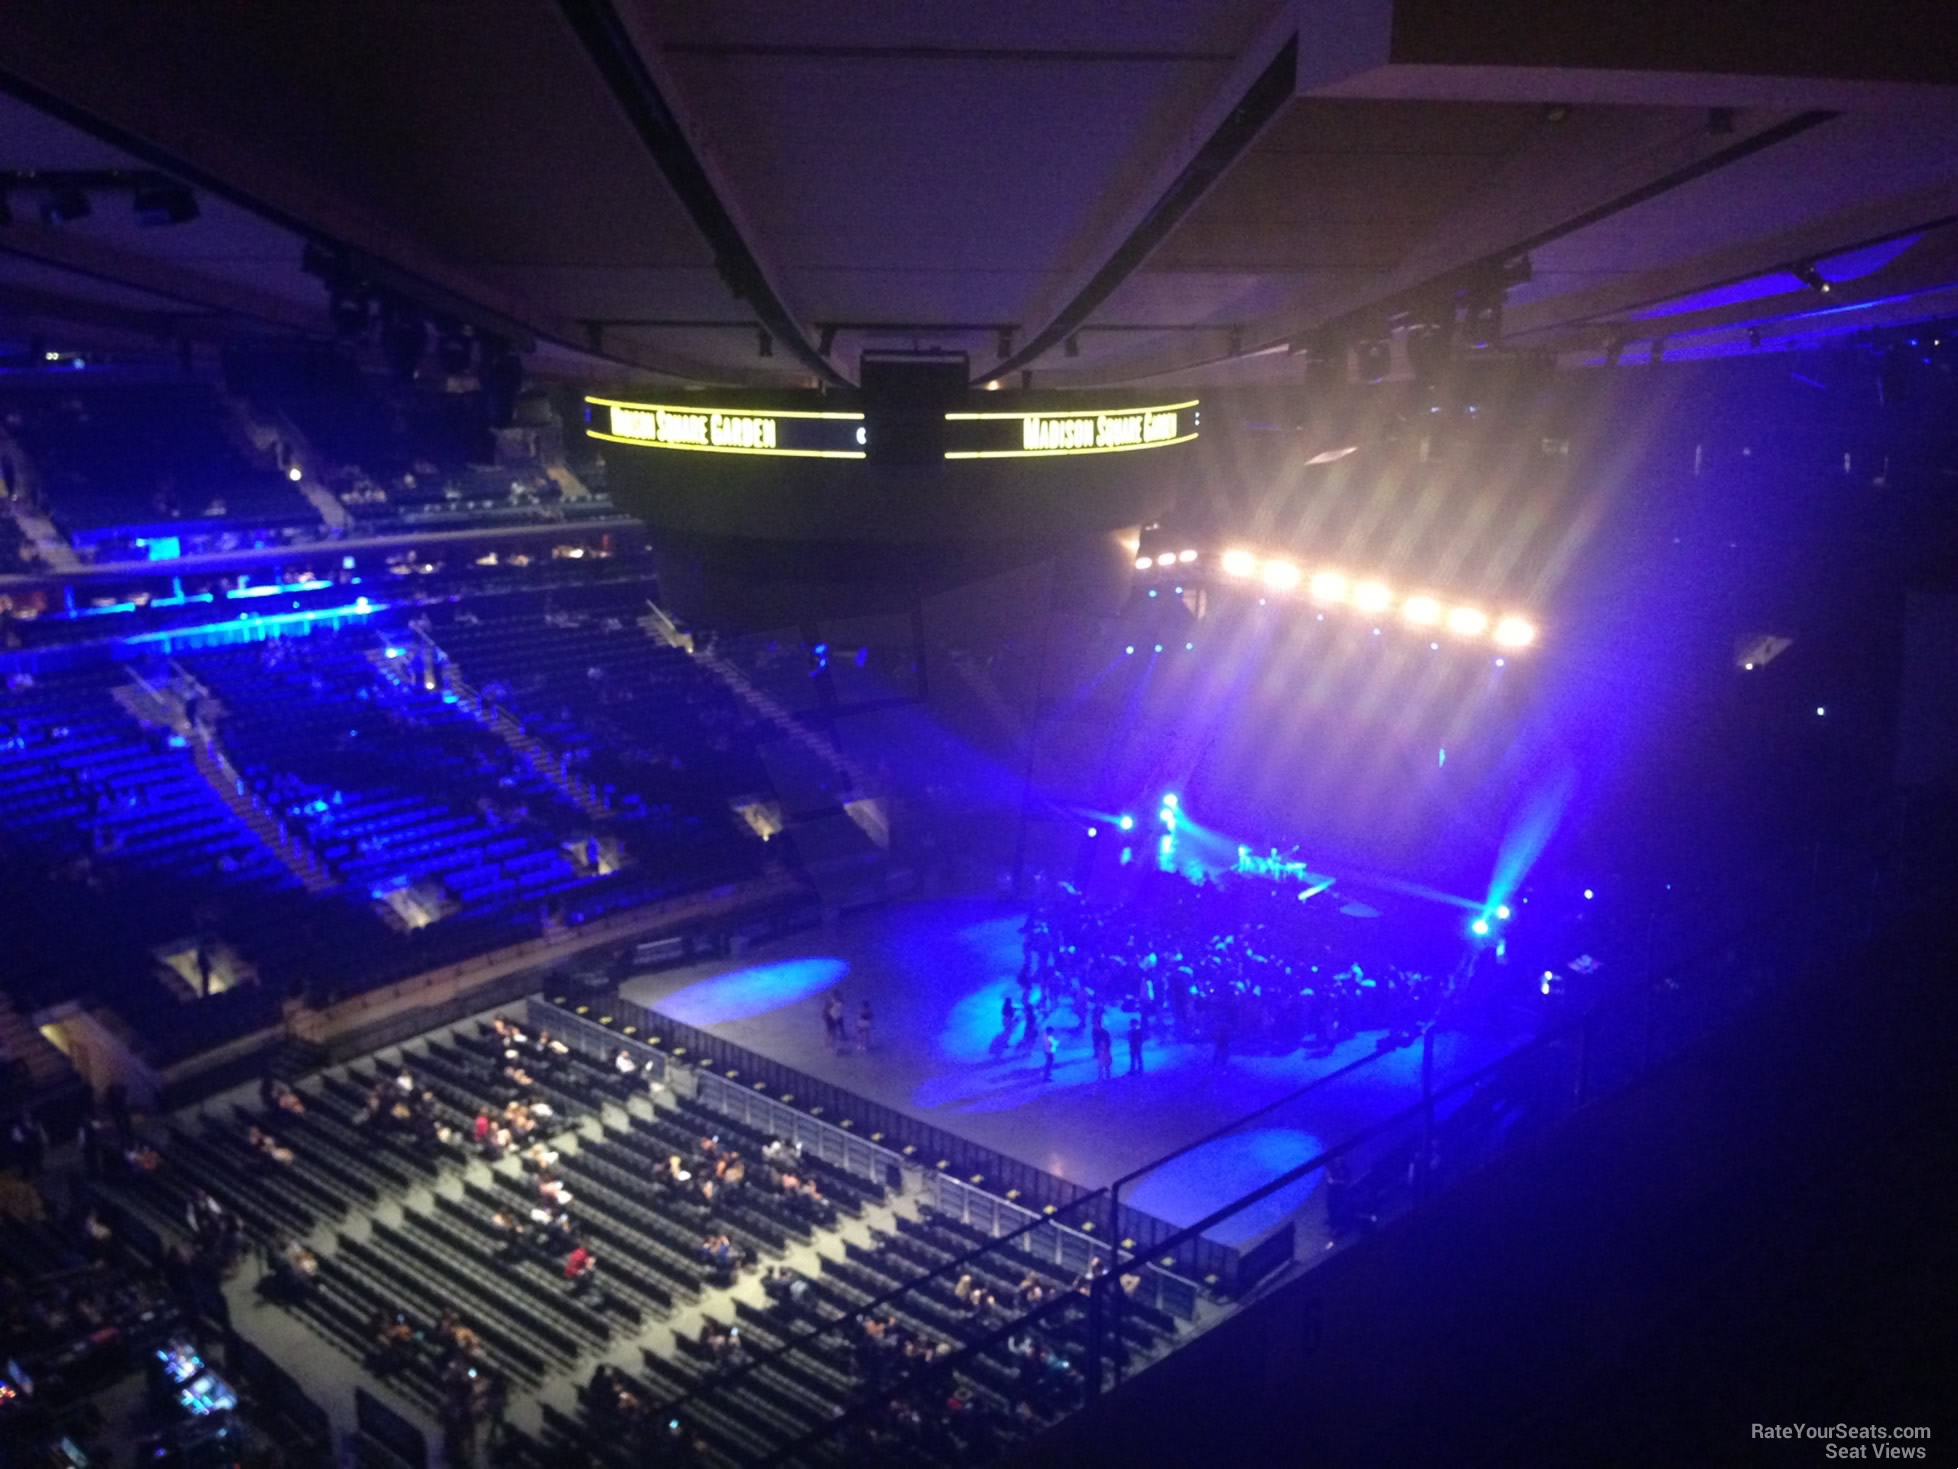 Madison square garden section 310 concert seating - Madison square garden event schedule ...